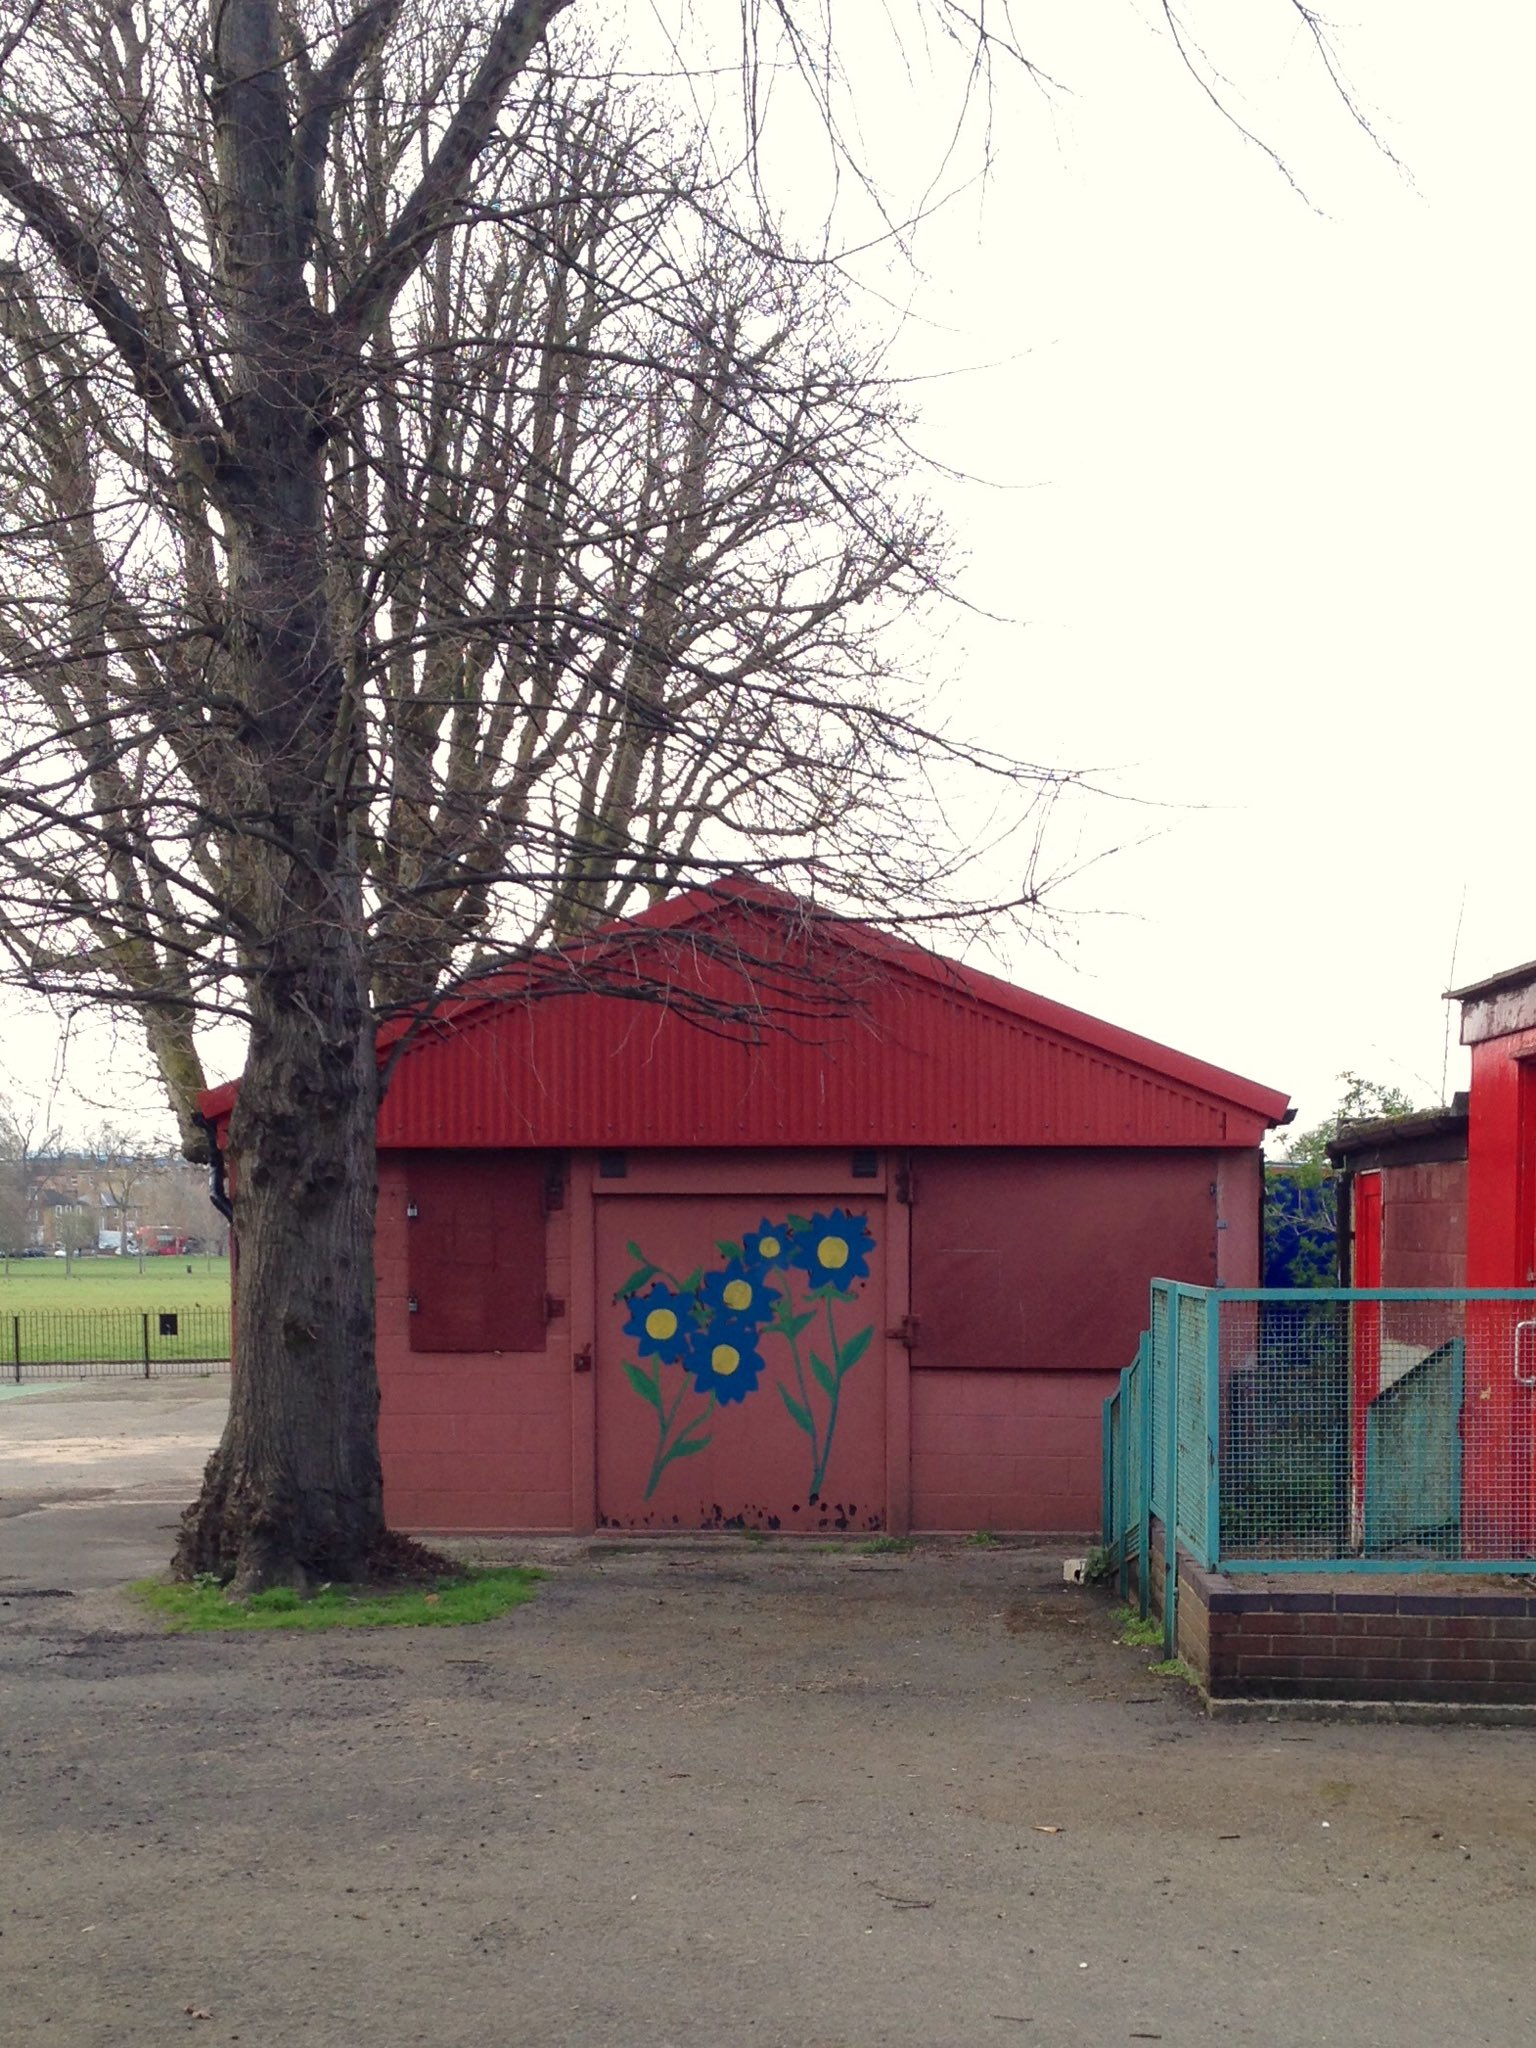 This corrugated shed on Peckham Rye was built to house captured Italian prisoners of war in WW2. It's now a nursery https://t.co/FLMvlBT1JO